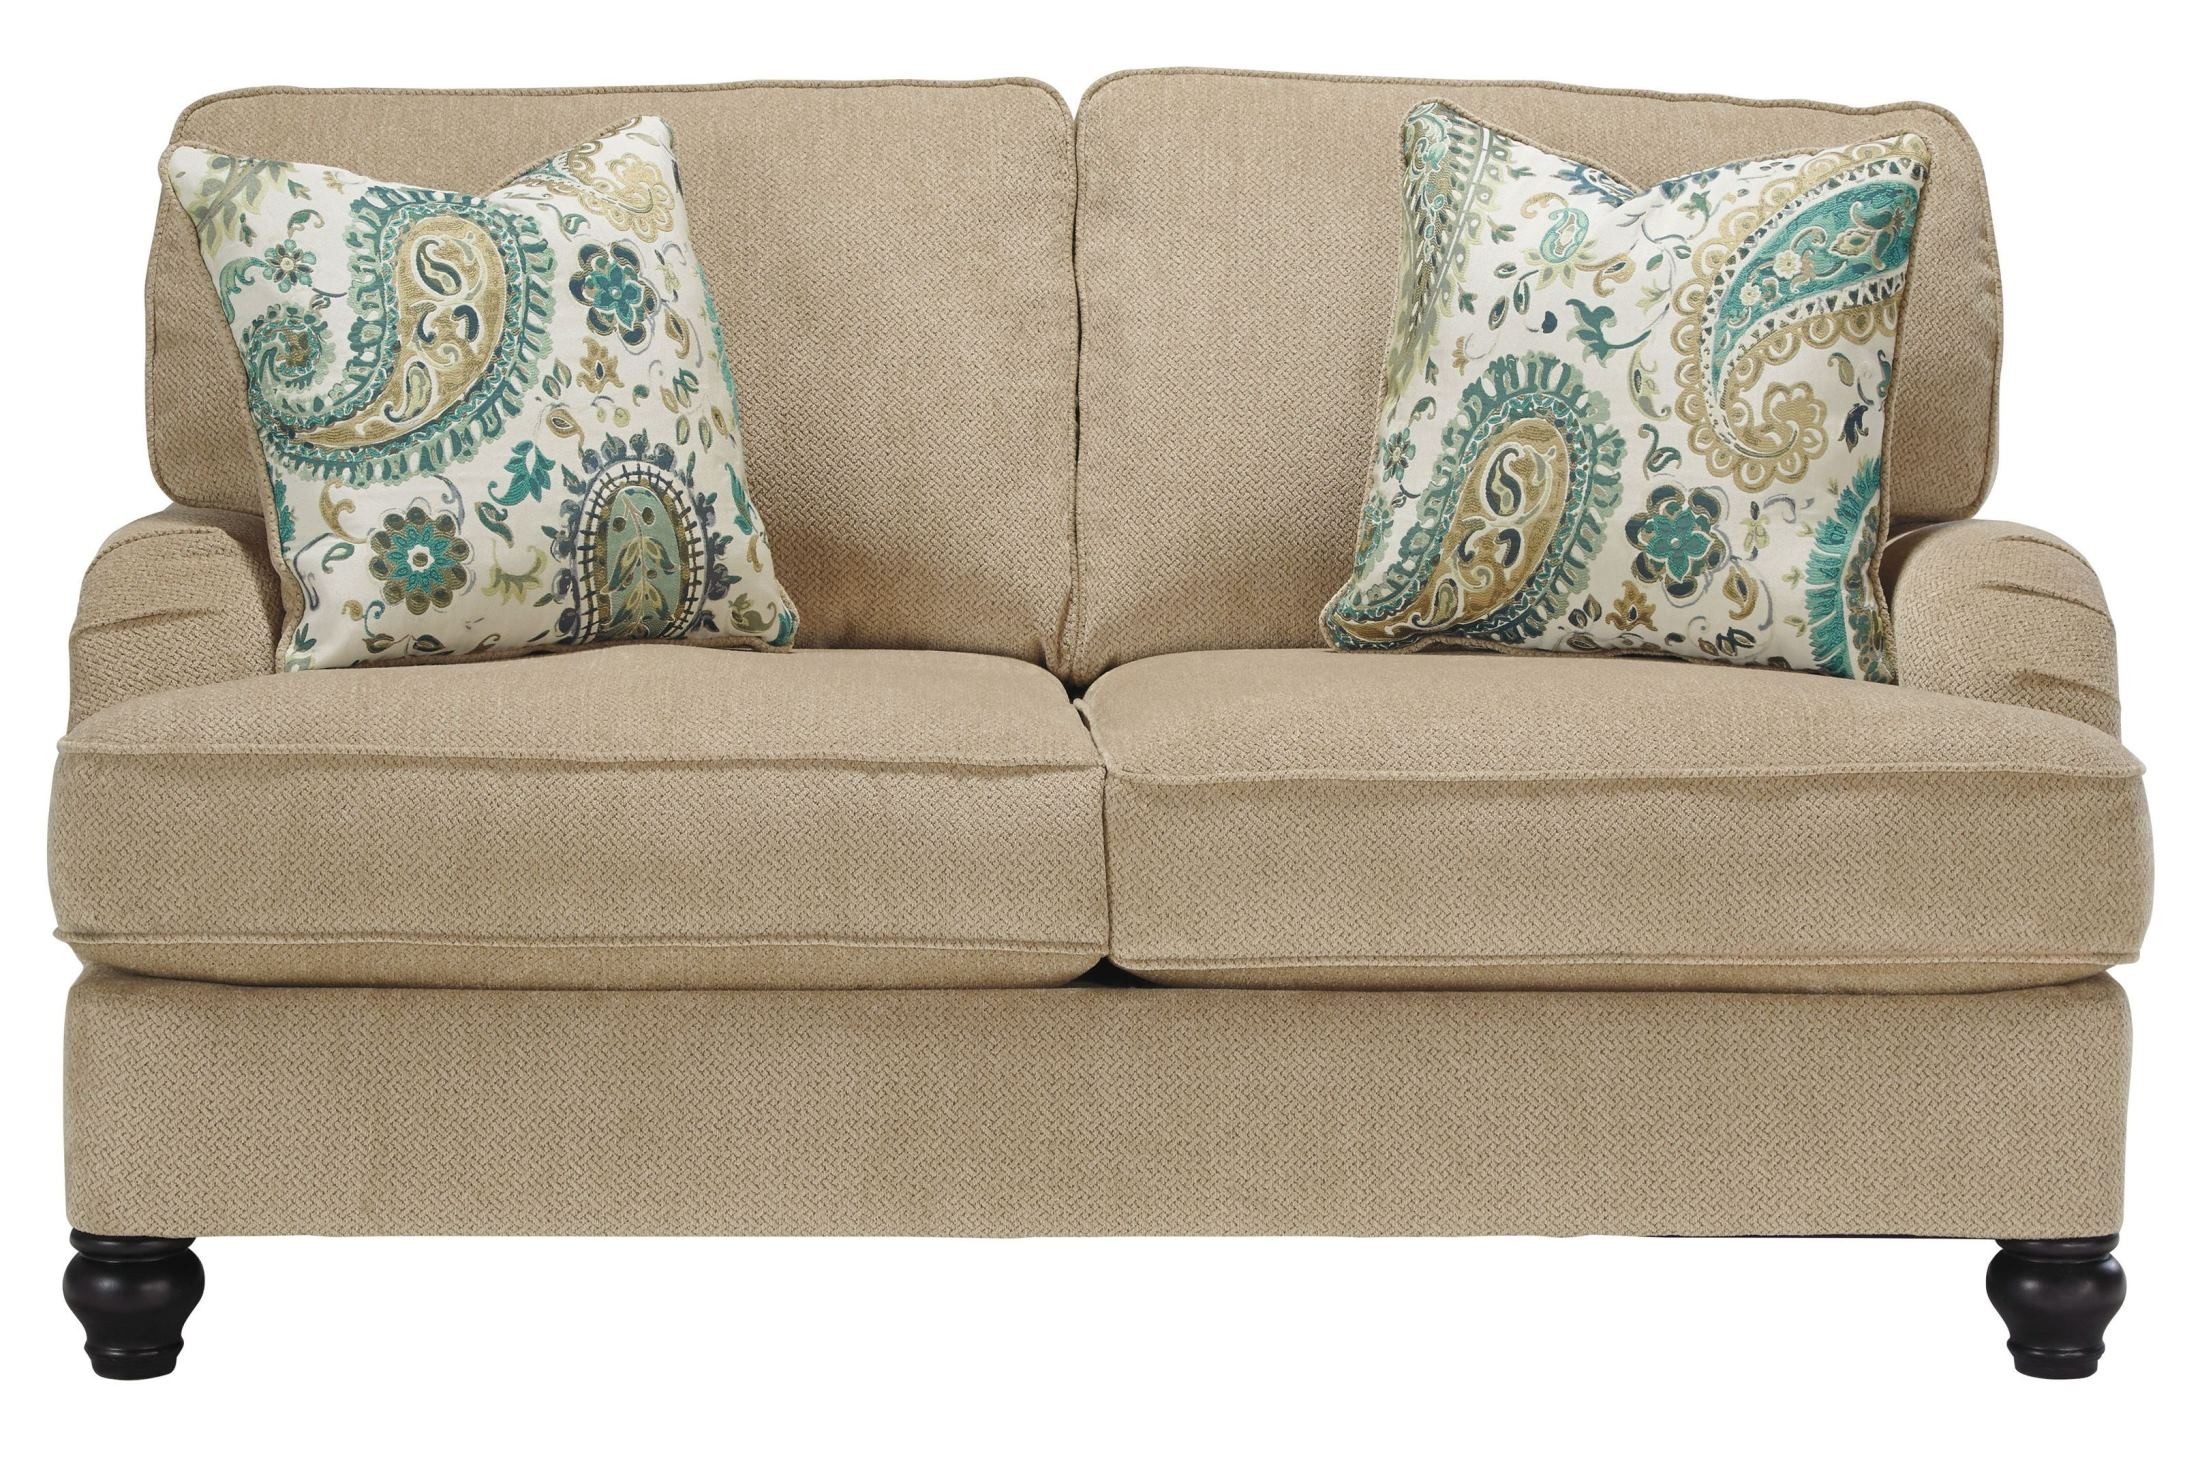 Lochian Bisque Living Room Set from Ashley